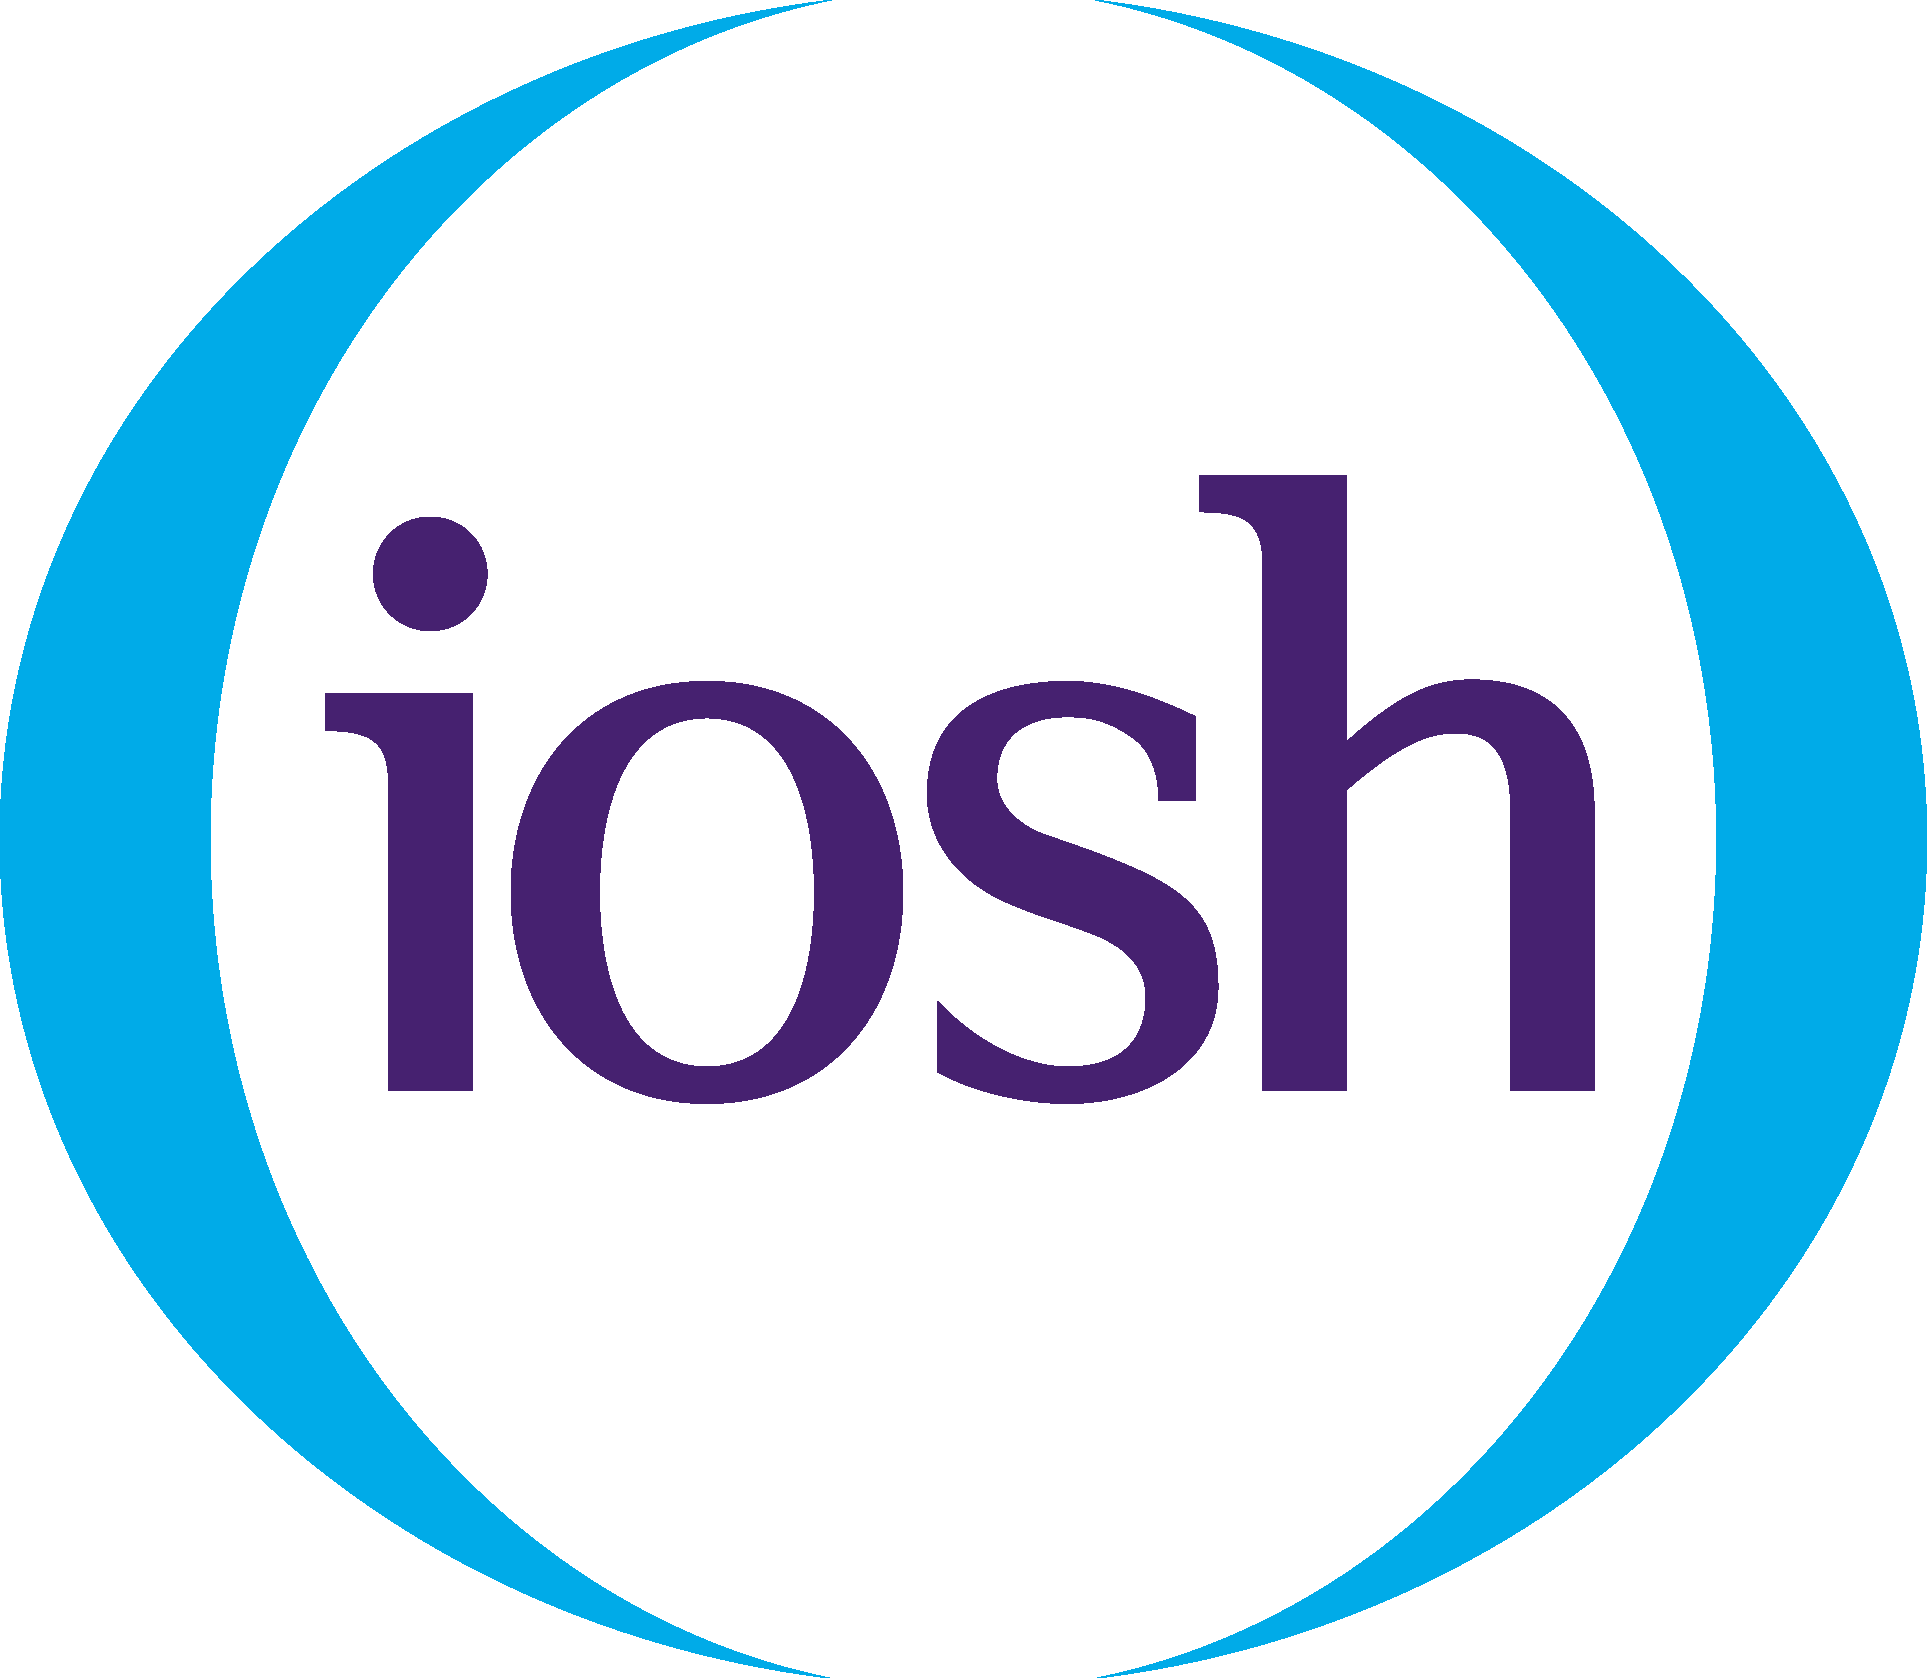 IOSH Logo (Institution of Occupational Safety and Health) png